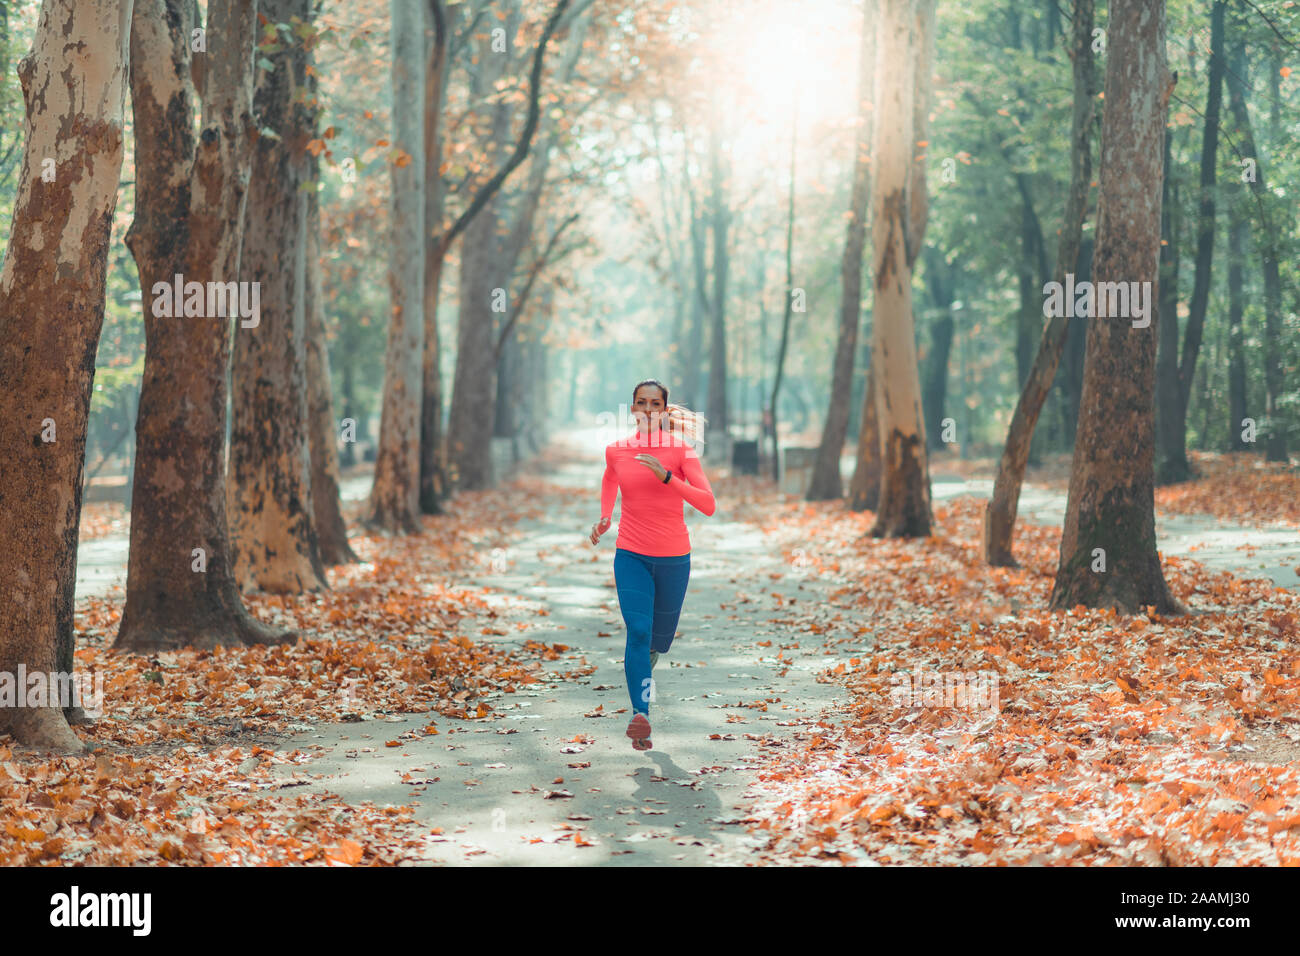 Woman jogging in a park Stock Photo